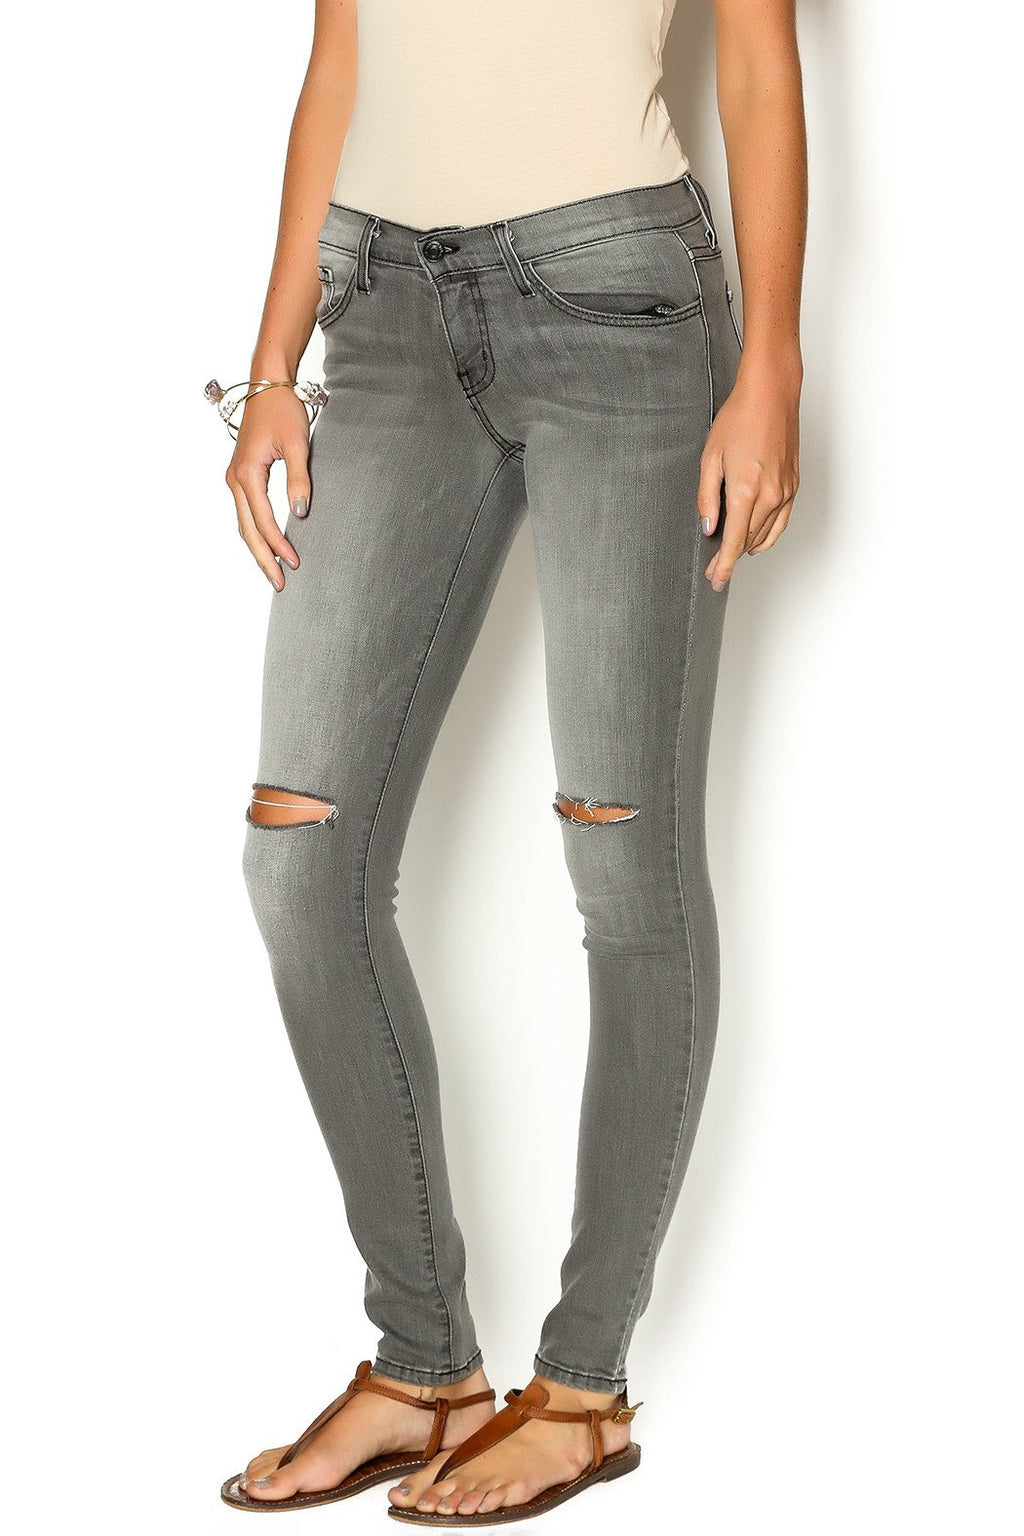 Gray Skinnies with Split Knee